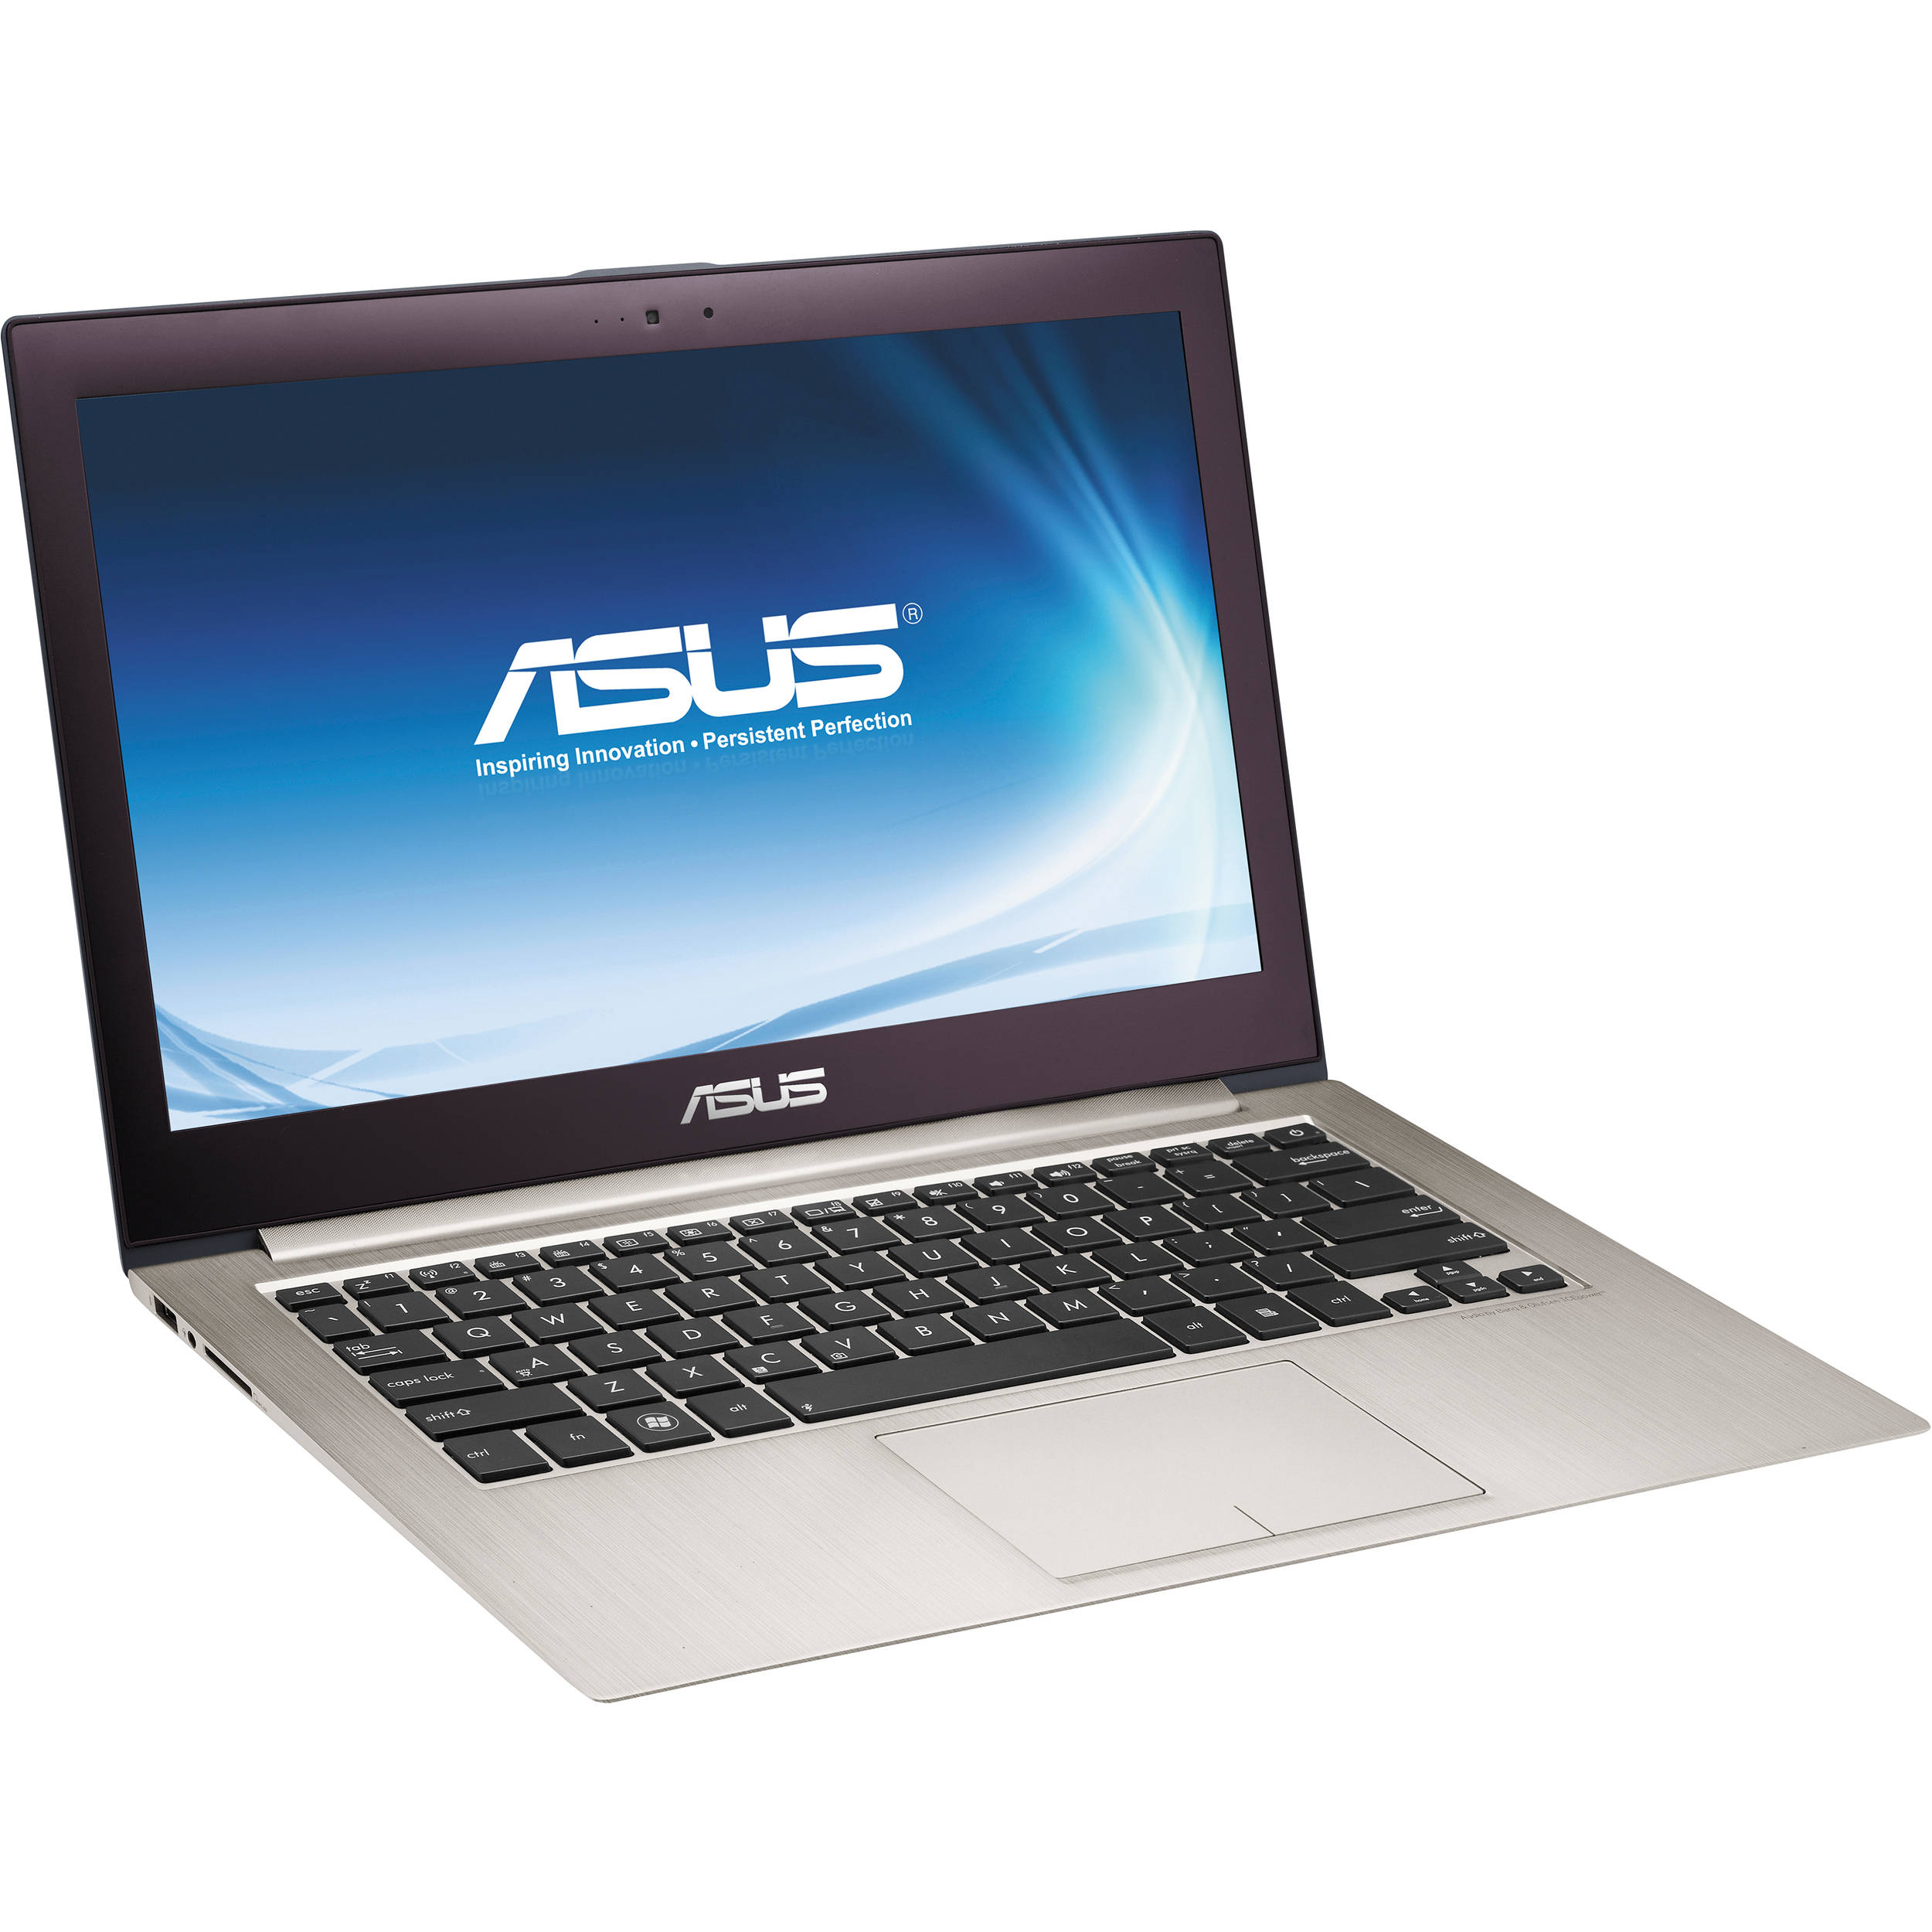 ASUS ZENBOOK UX31A INTEL BLUETOOTH WINDOWS 8.1 DRIVERS DOWNLOAD